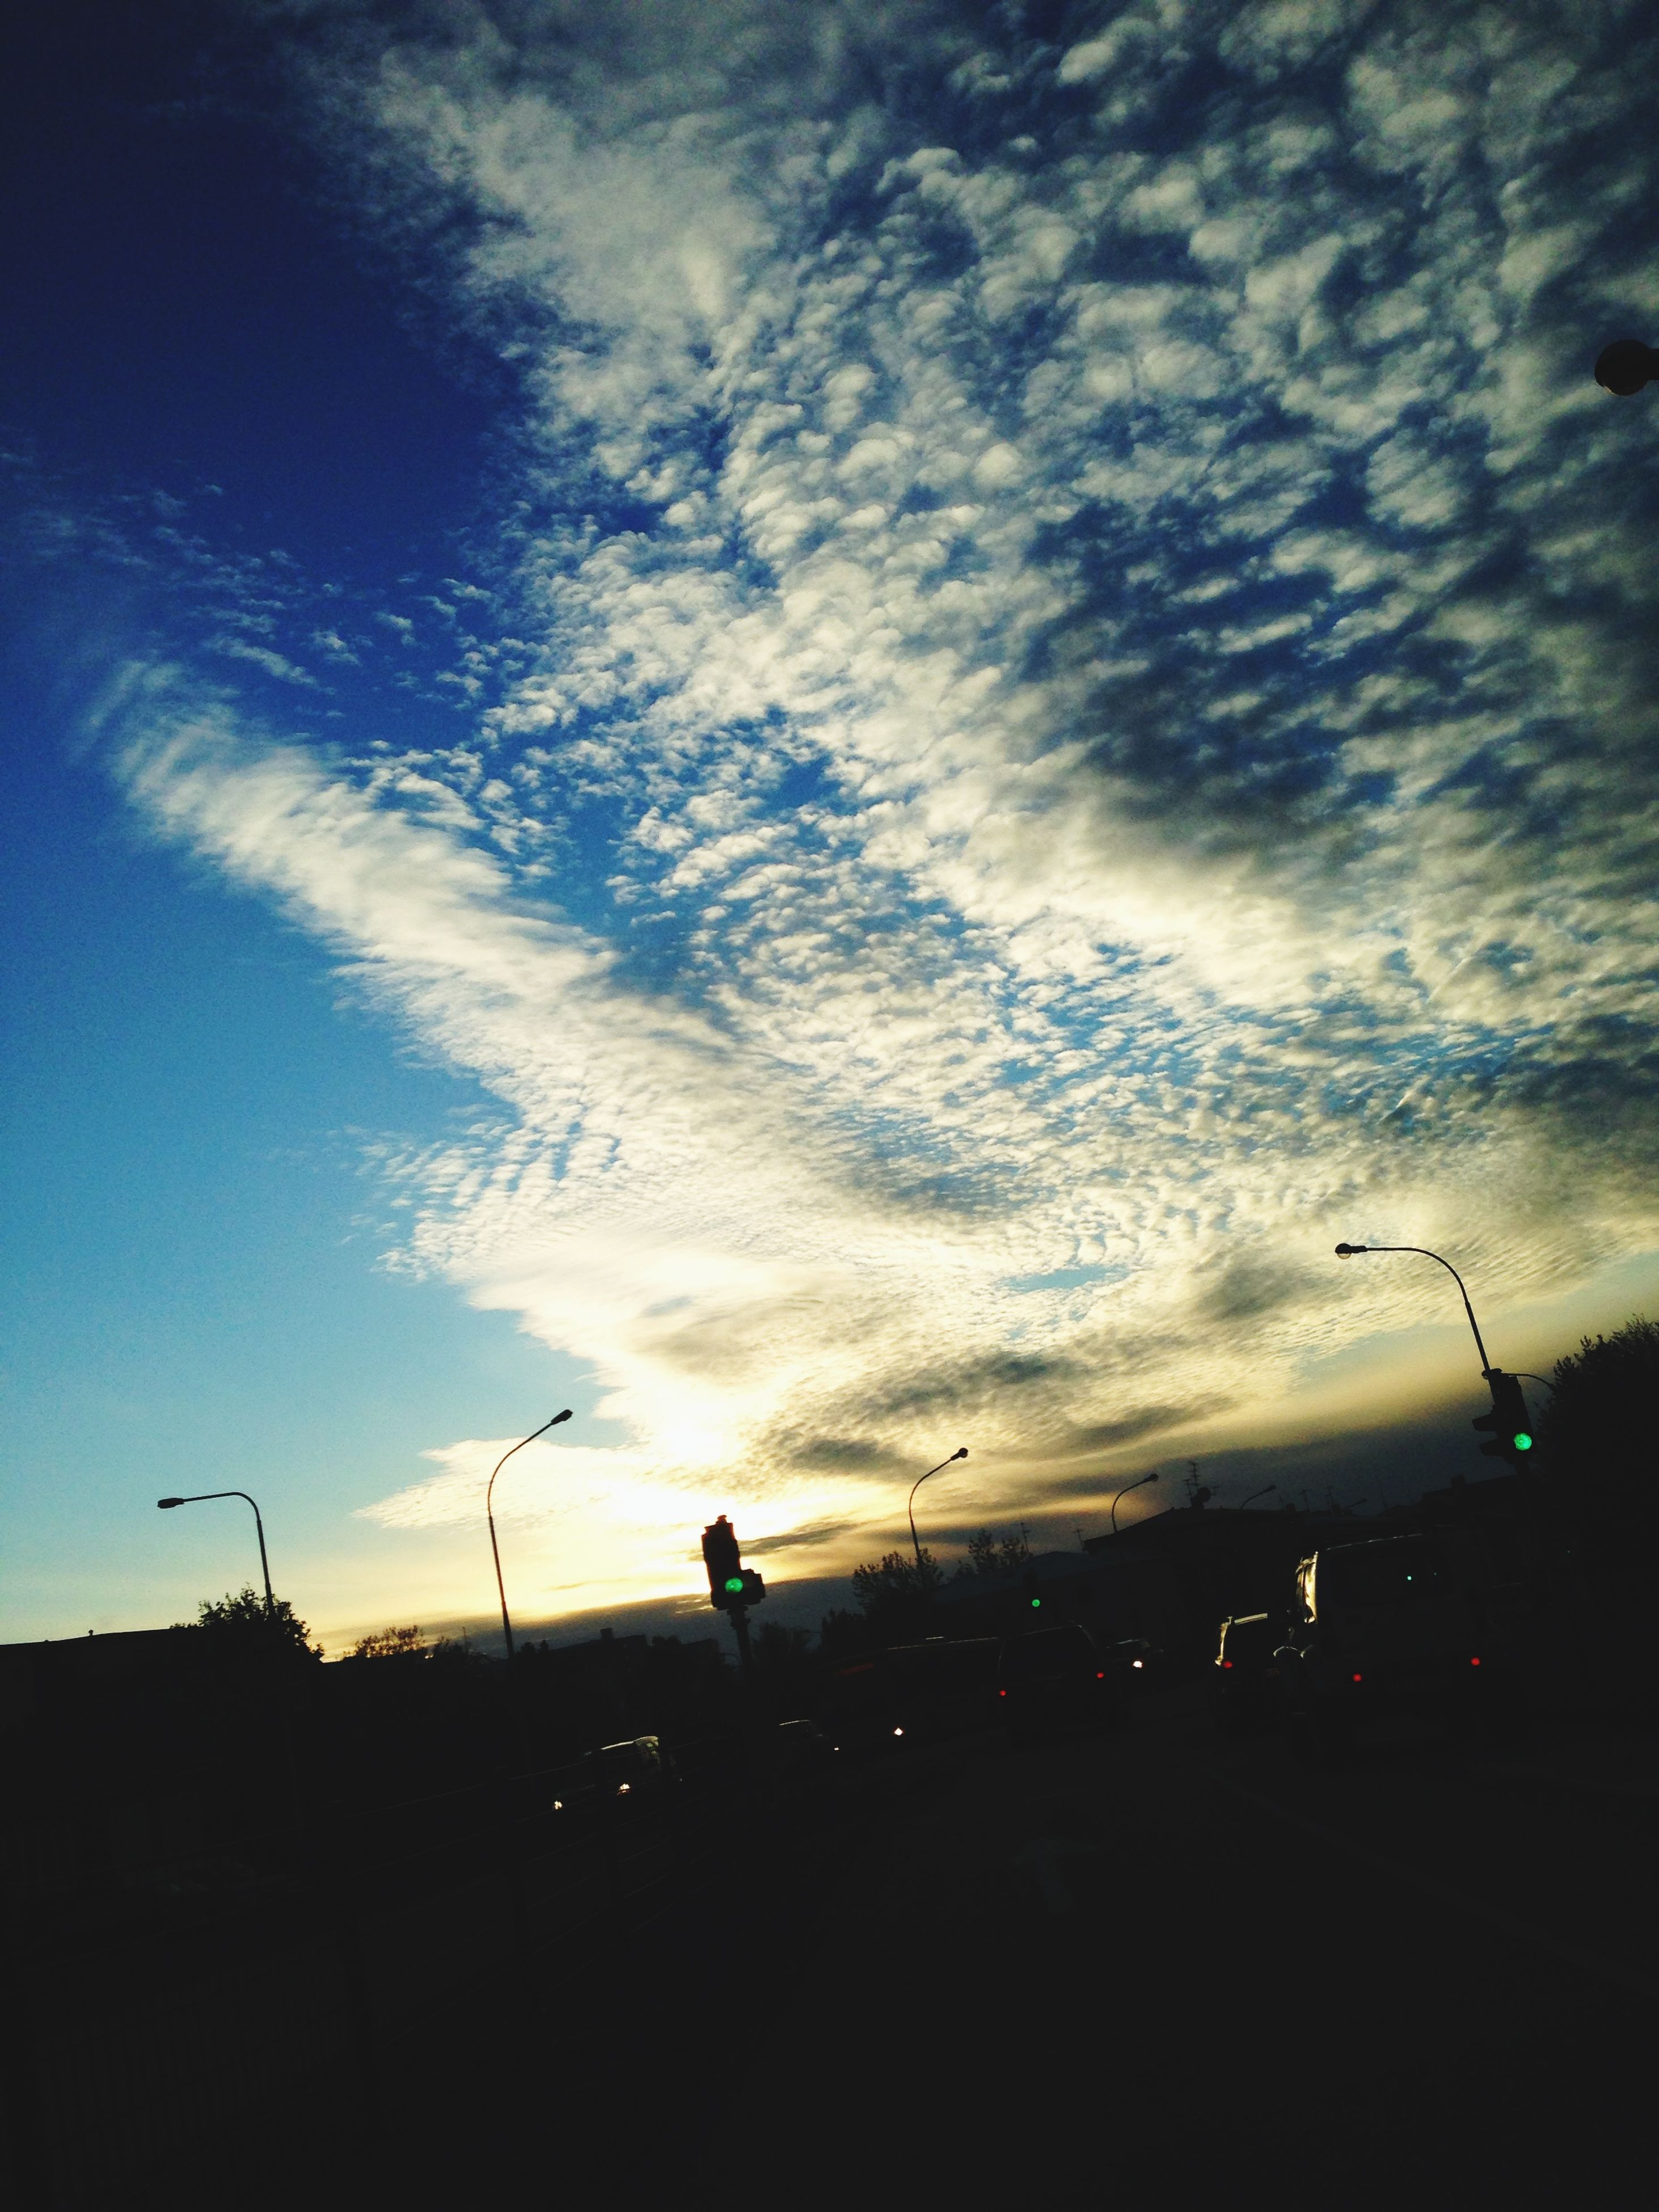 sky, transportation, cloud - sky, silhouette, mode of transport, cloudy, street light, road, car, cloud, dusk, airplane, land vehicle, low angle view, street, on the move, weather, air vehicle, road marking, sunset